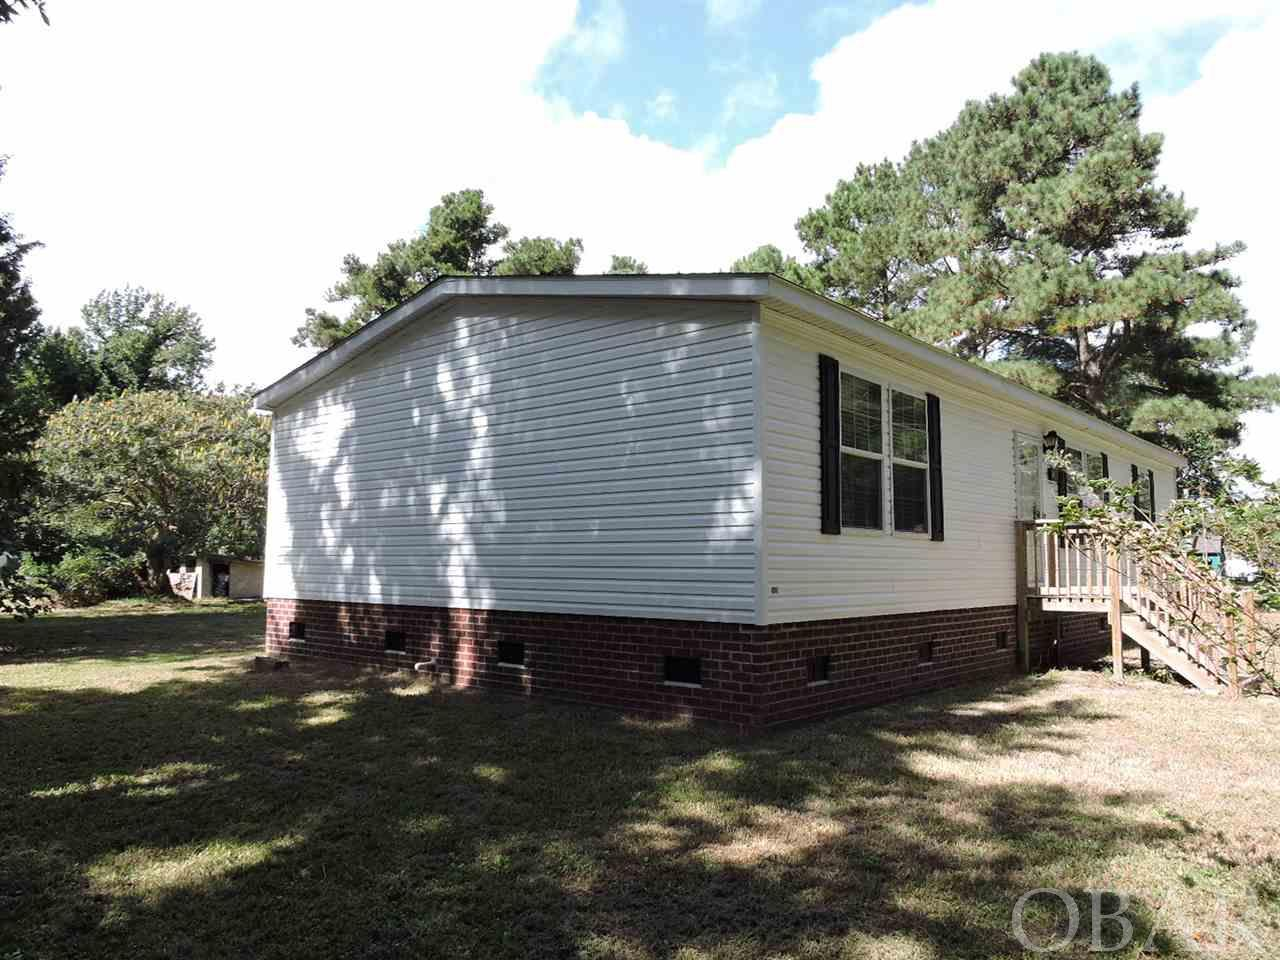 108 Litchfield Lane,Knotts Island,NC 27950,3 Bedrooms Bedrooms,2 BathroomsBathrooms,Residential,Litchfield Lane,98004